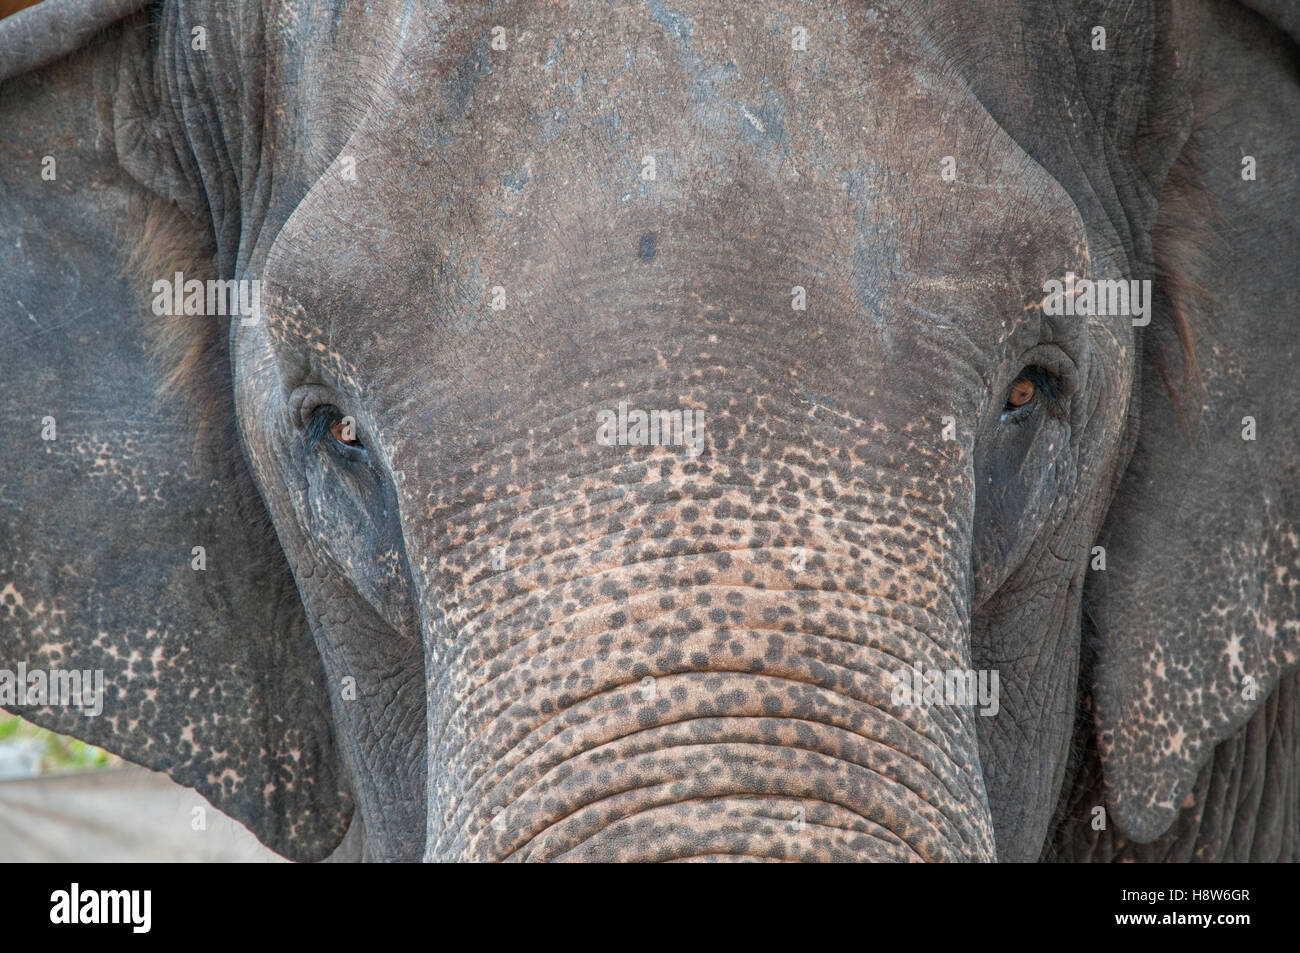 Domesticated Indian elephant in Thailand - Stock Image